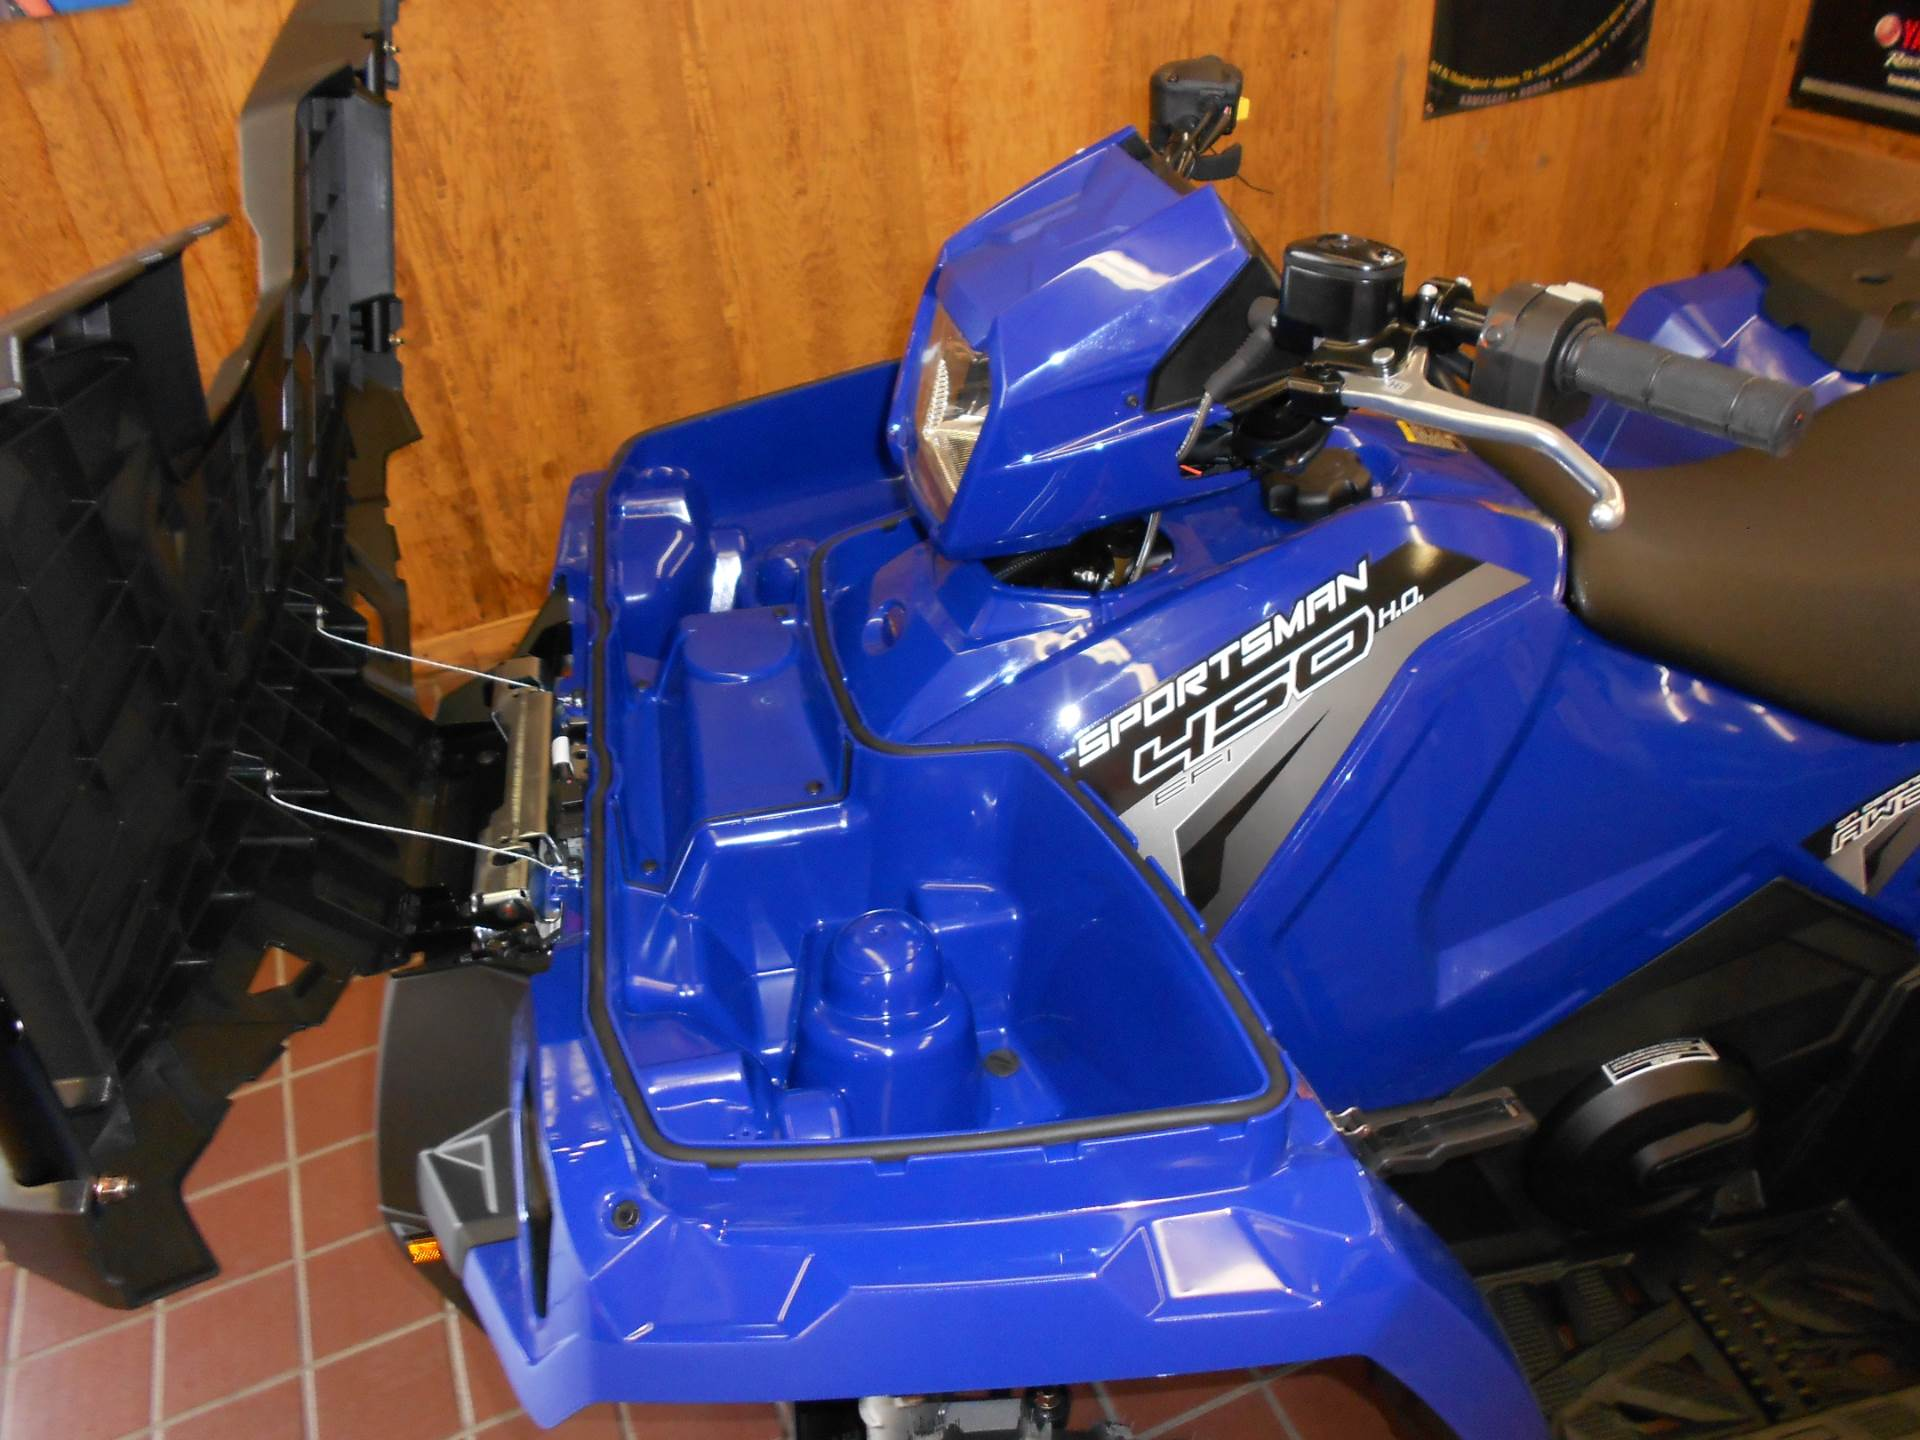 2020 Polaris Sportsman 450 H.O. in Abilene, Texas - Photo 6